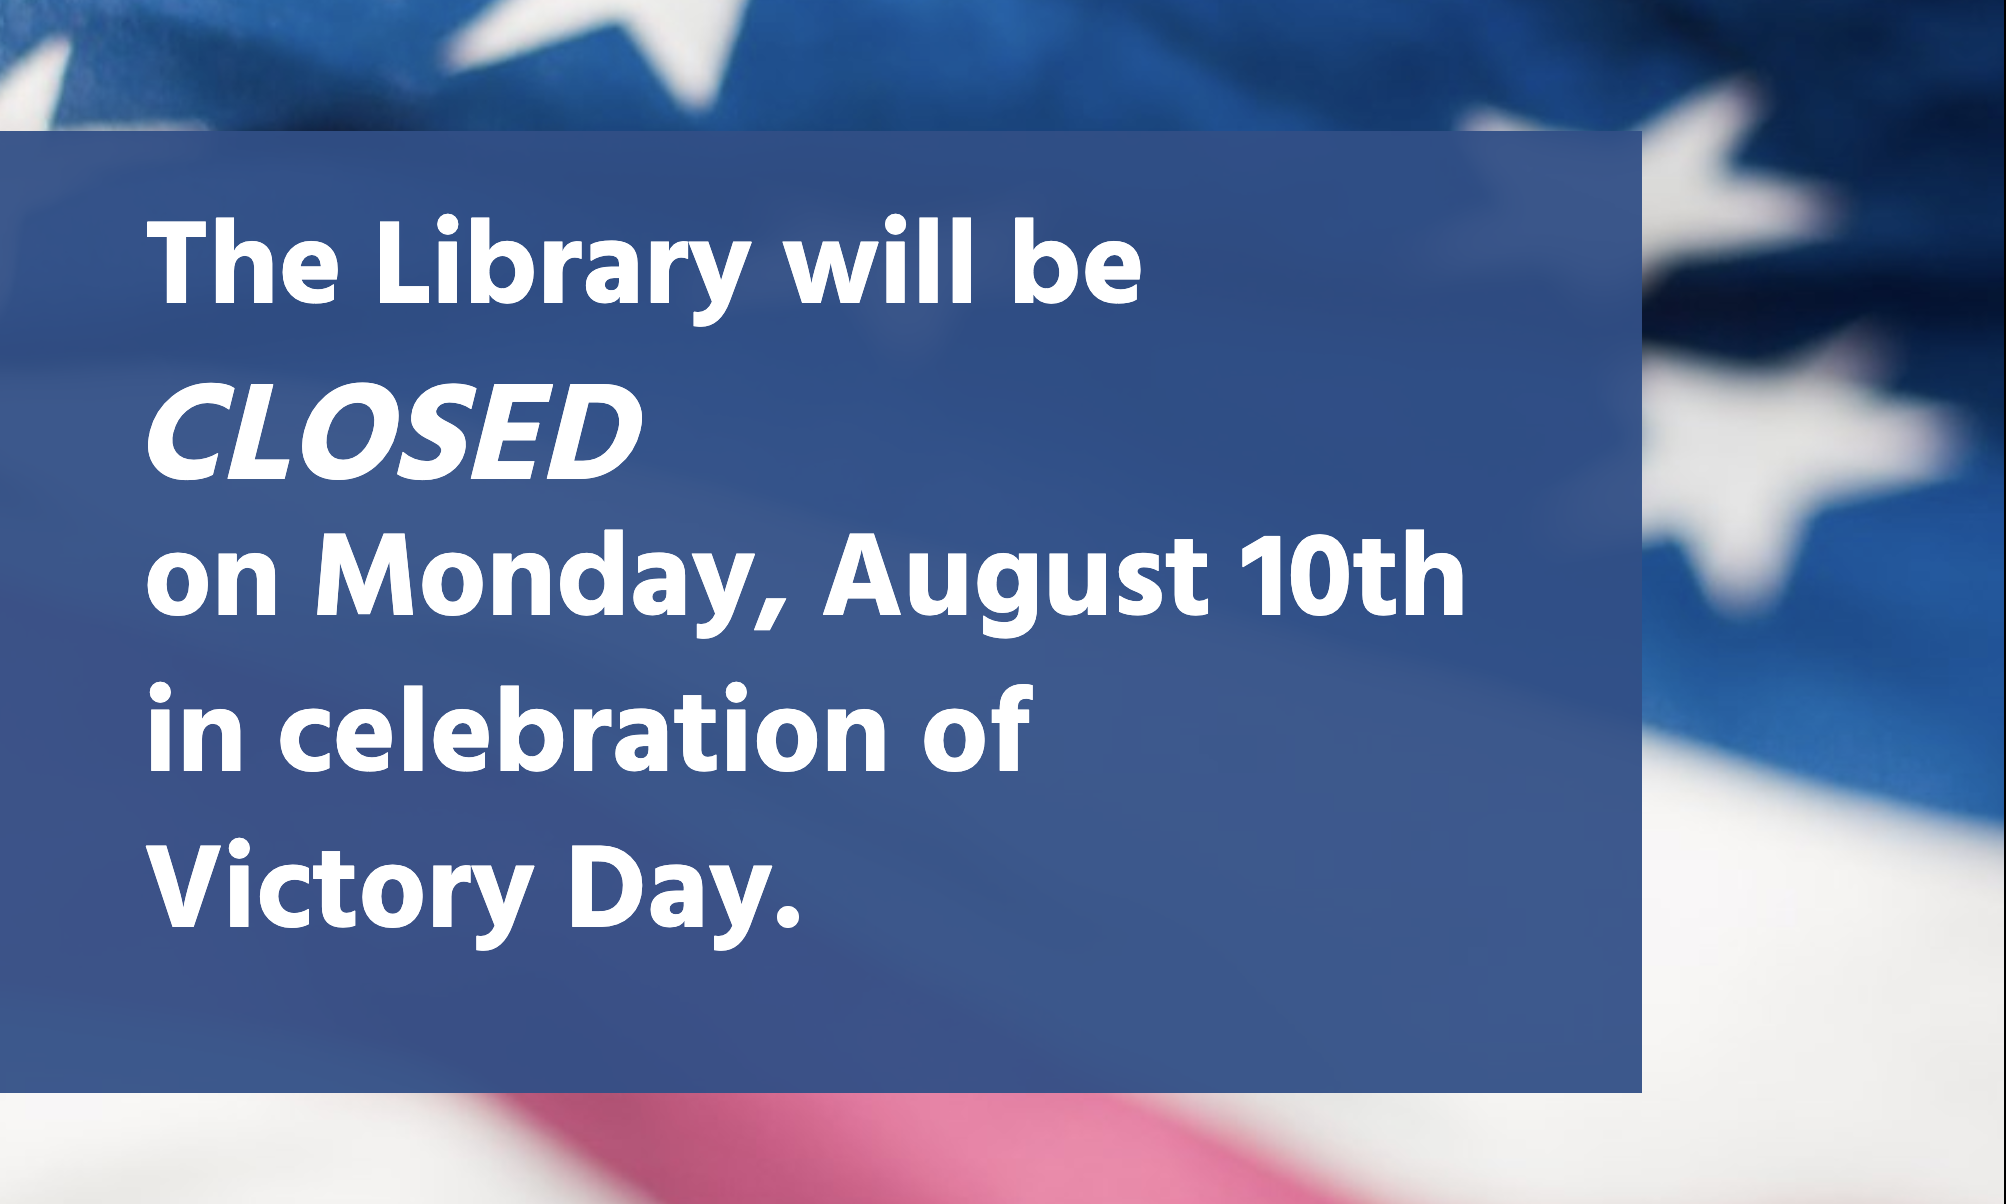 The Library will be CLOSED on Monday, August 10th in celebration of Victory Day.